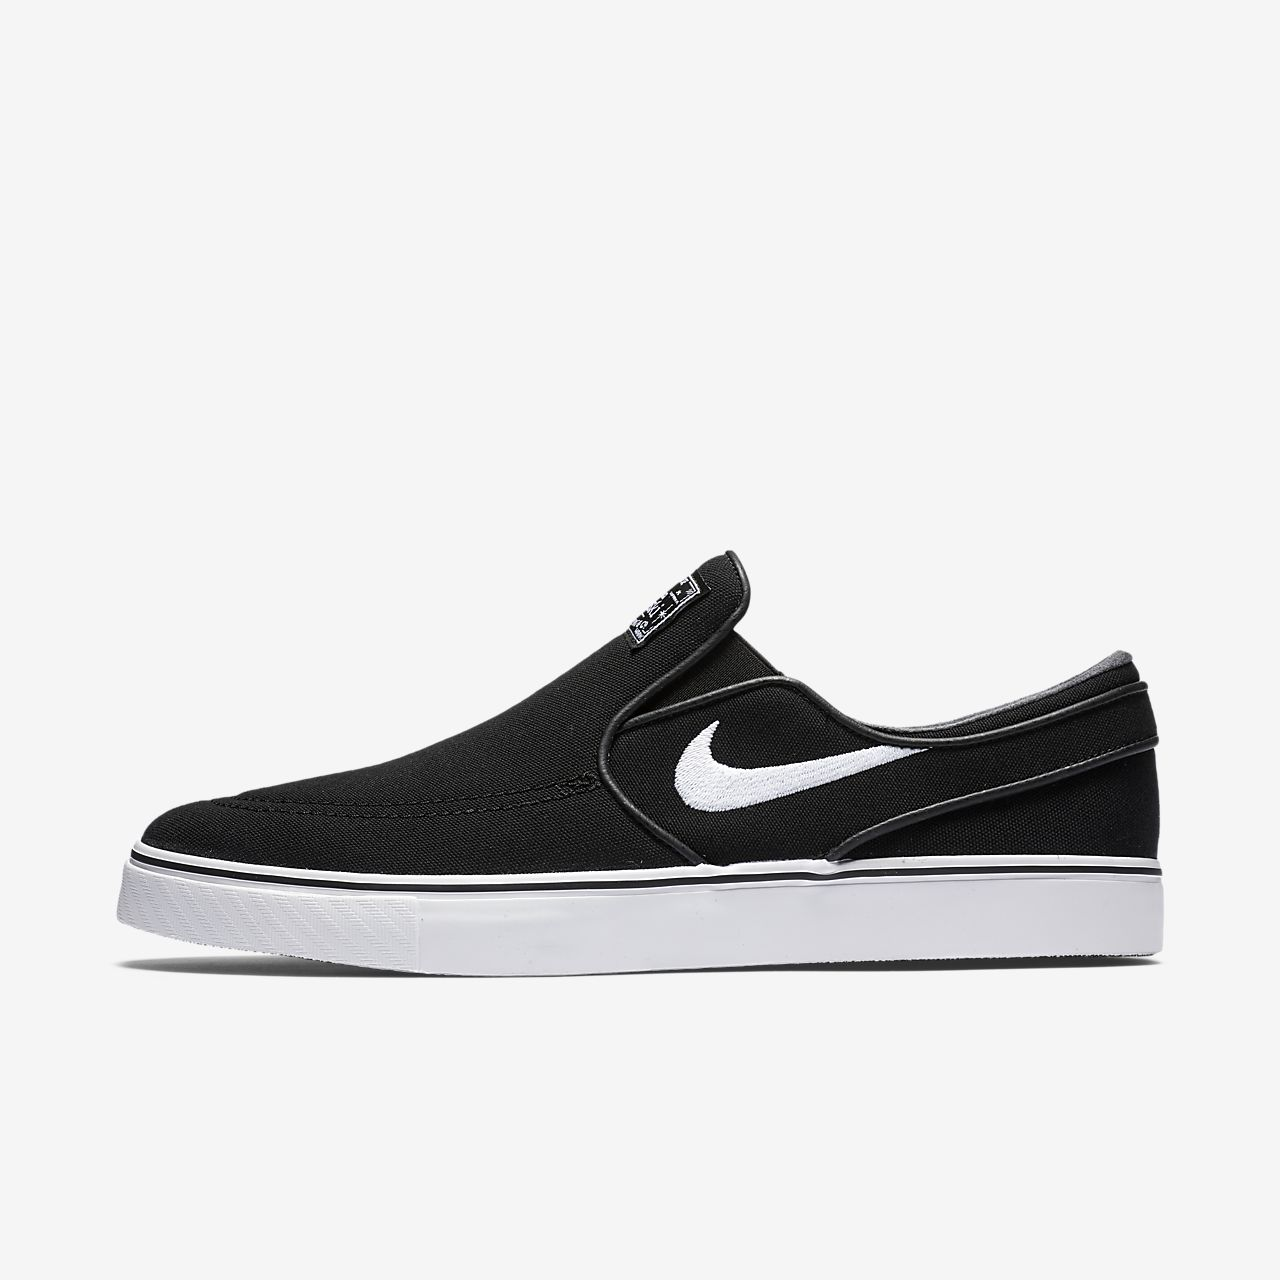 eb556e162dc6 Nike SB Zoom Stefan Janoski Slip-On Canvas Men s Skateboarding Shoe ...